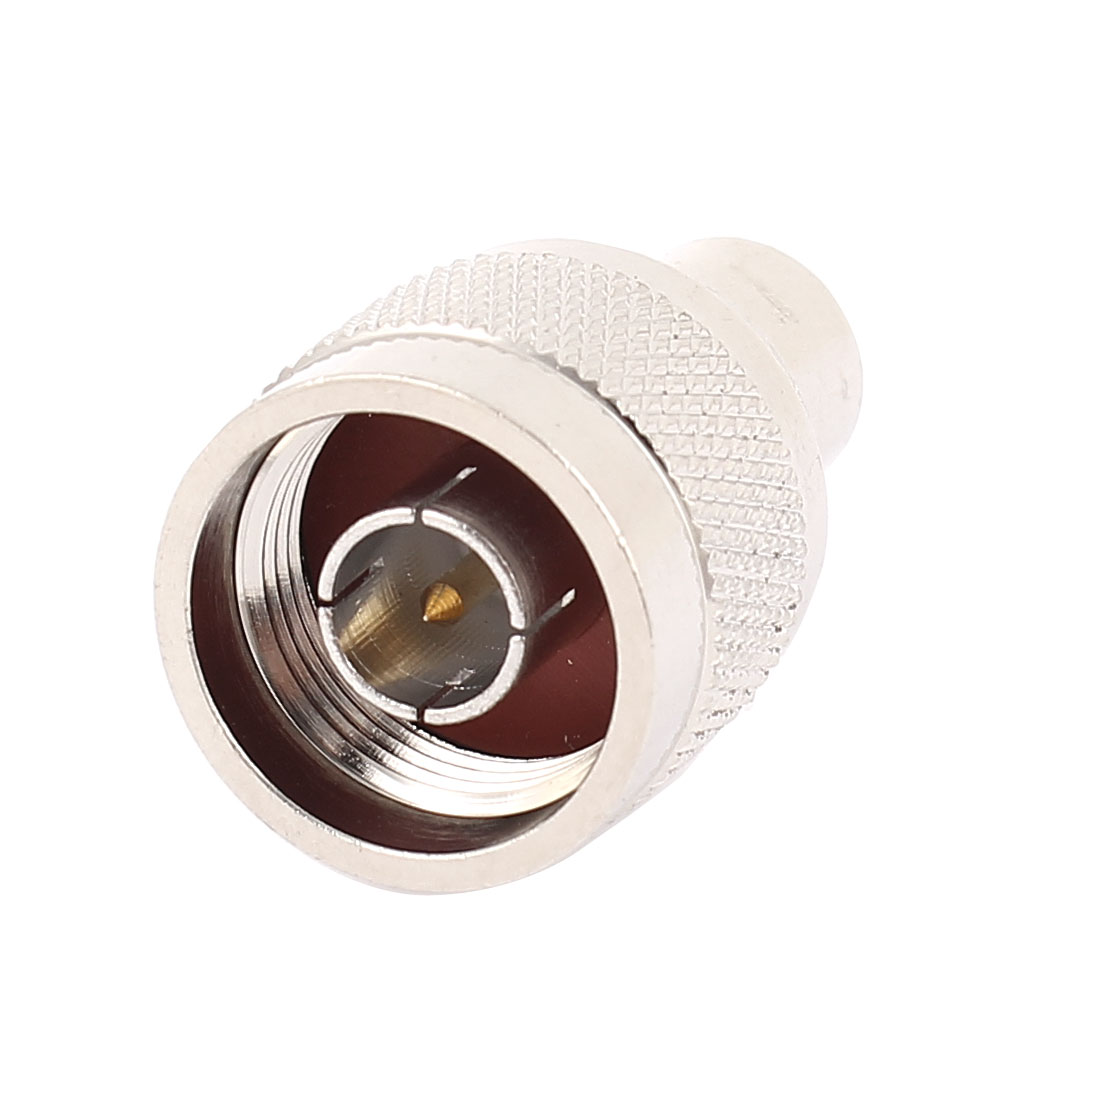 N-Type N Male to FME Male Jack RF Coaxial Adapter Connector